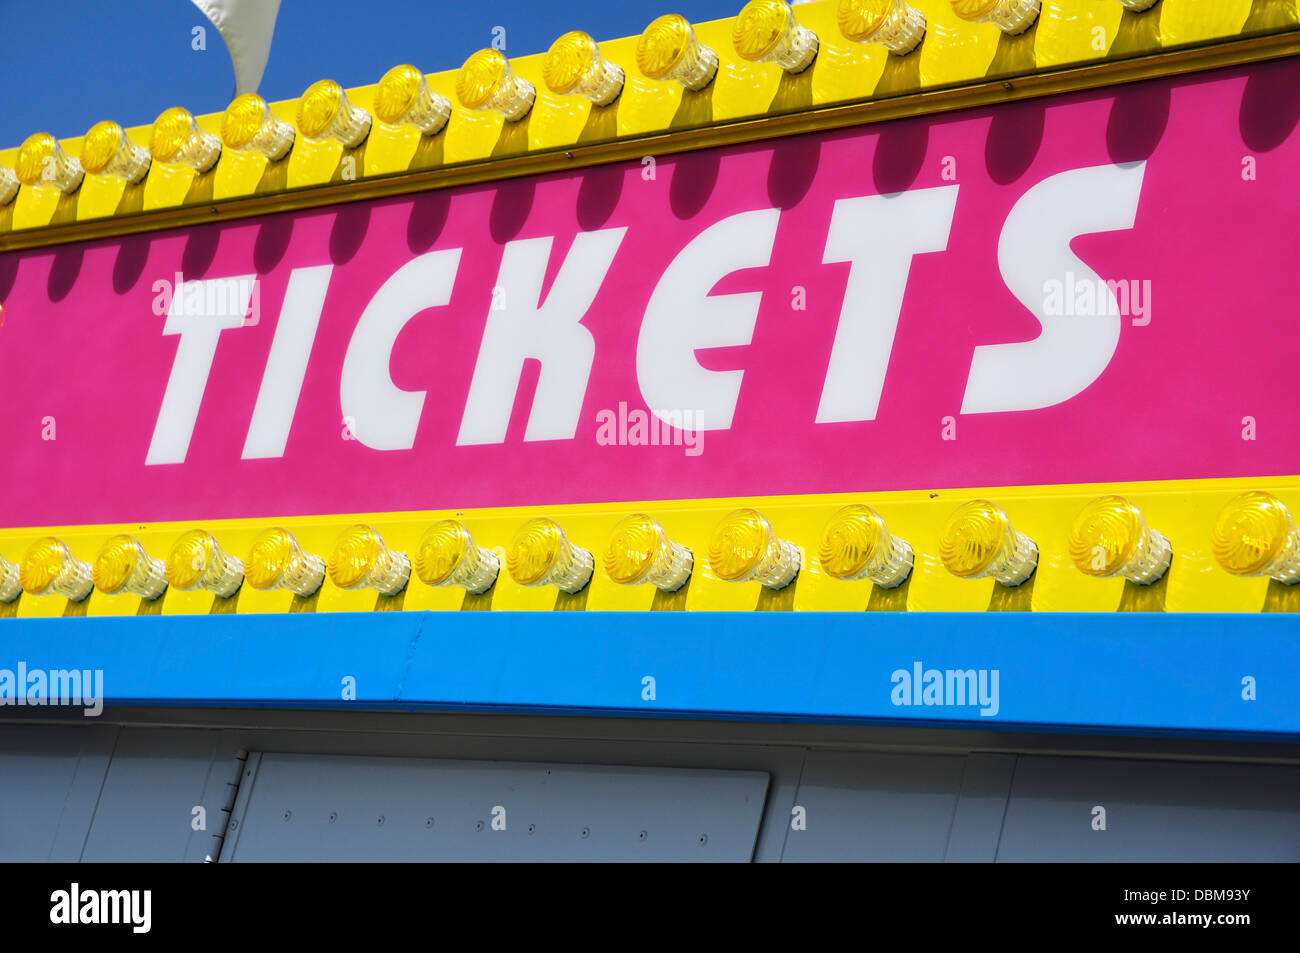 Ticket Booth Sign - Stock Image